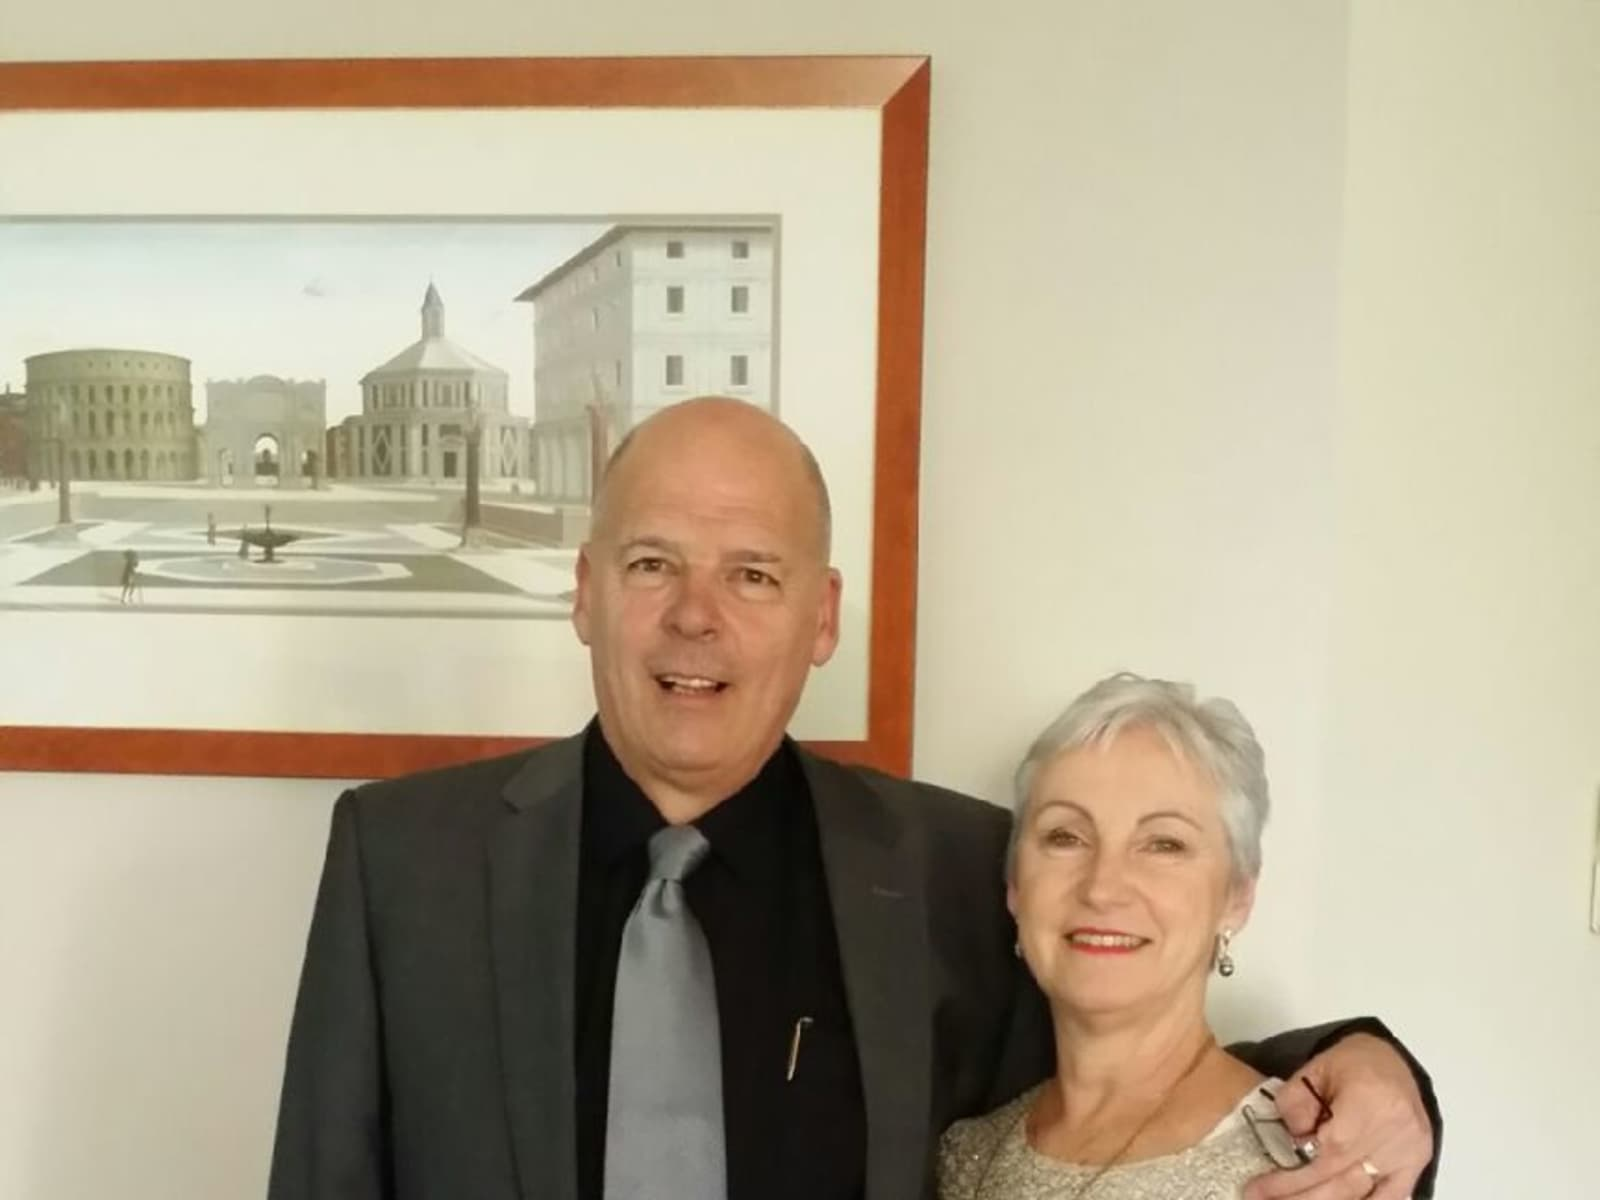 Janet & Anthony from Adelaide, South Australia, Australia